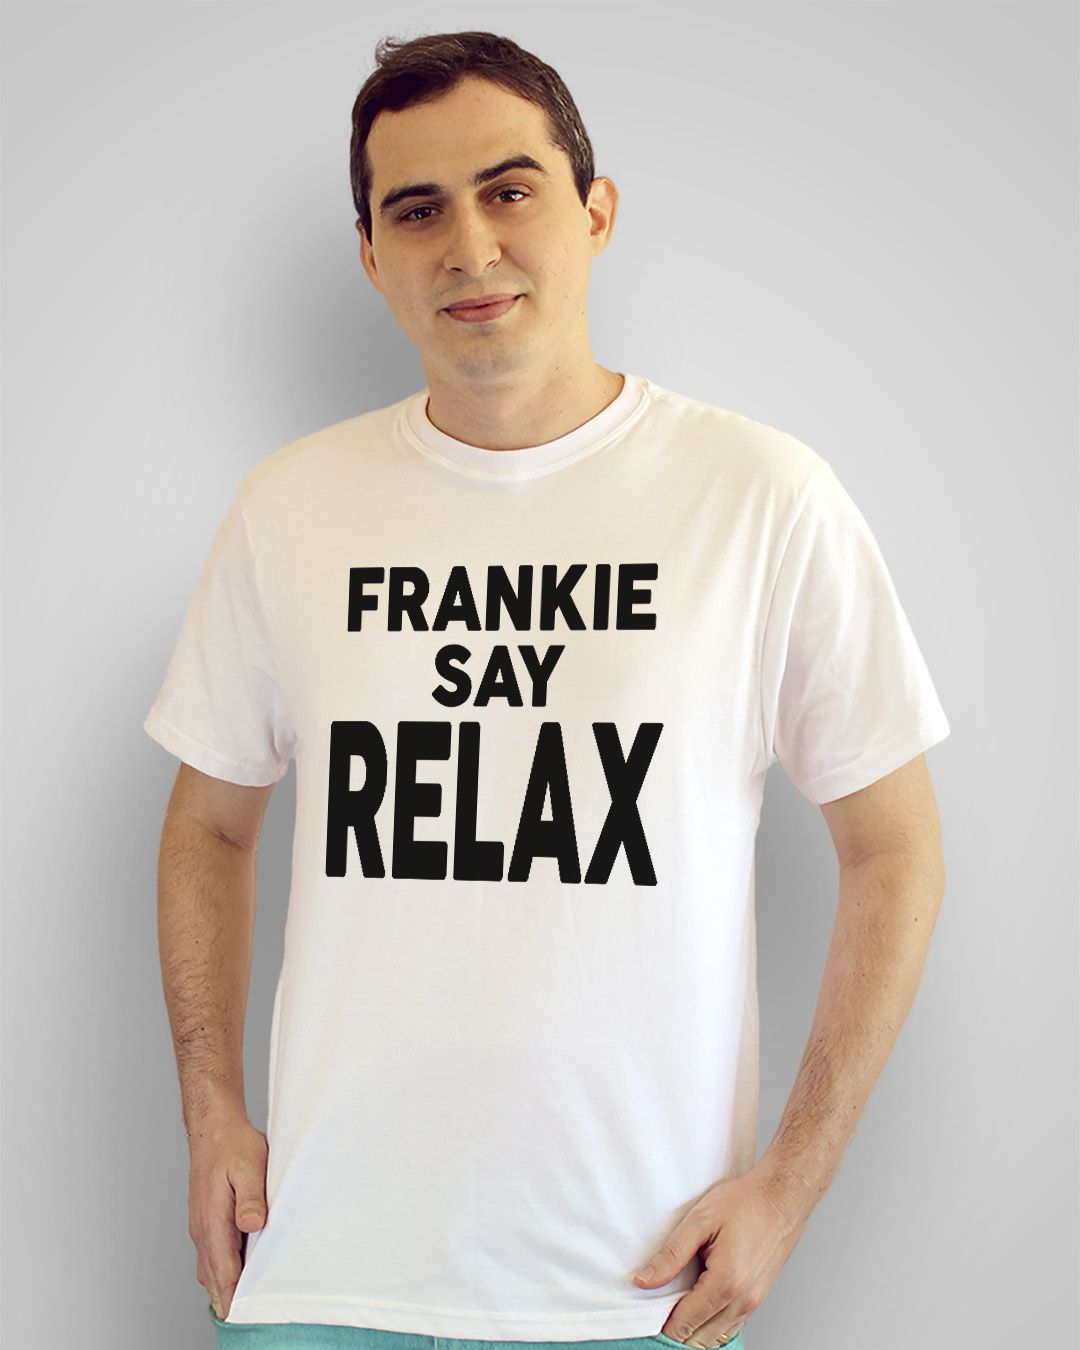 Camiseta Frankie say relax - Friends